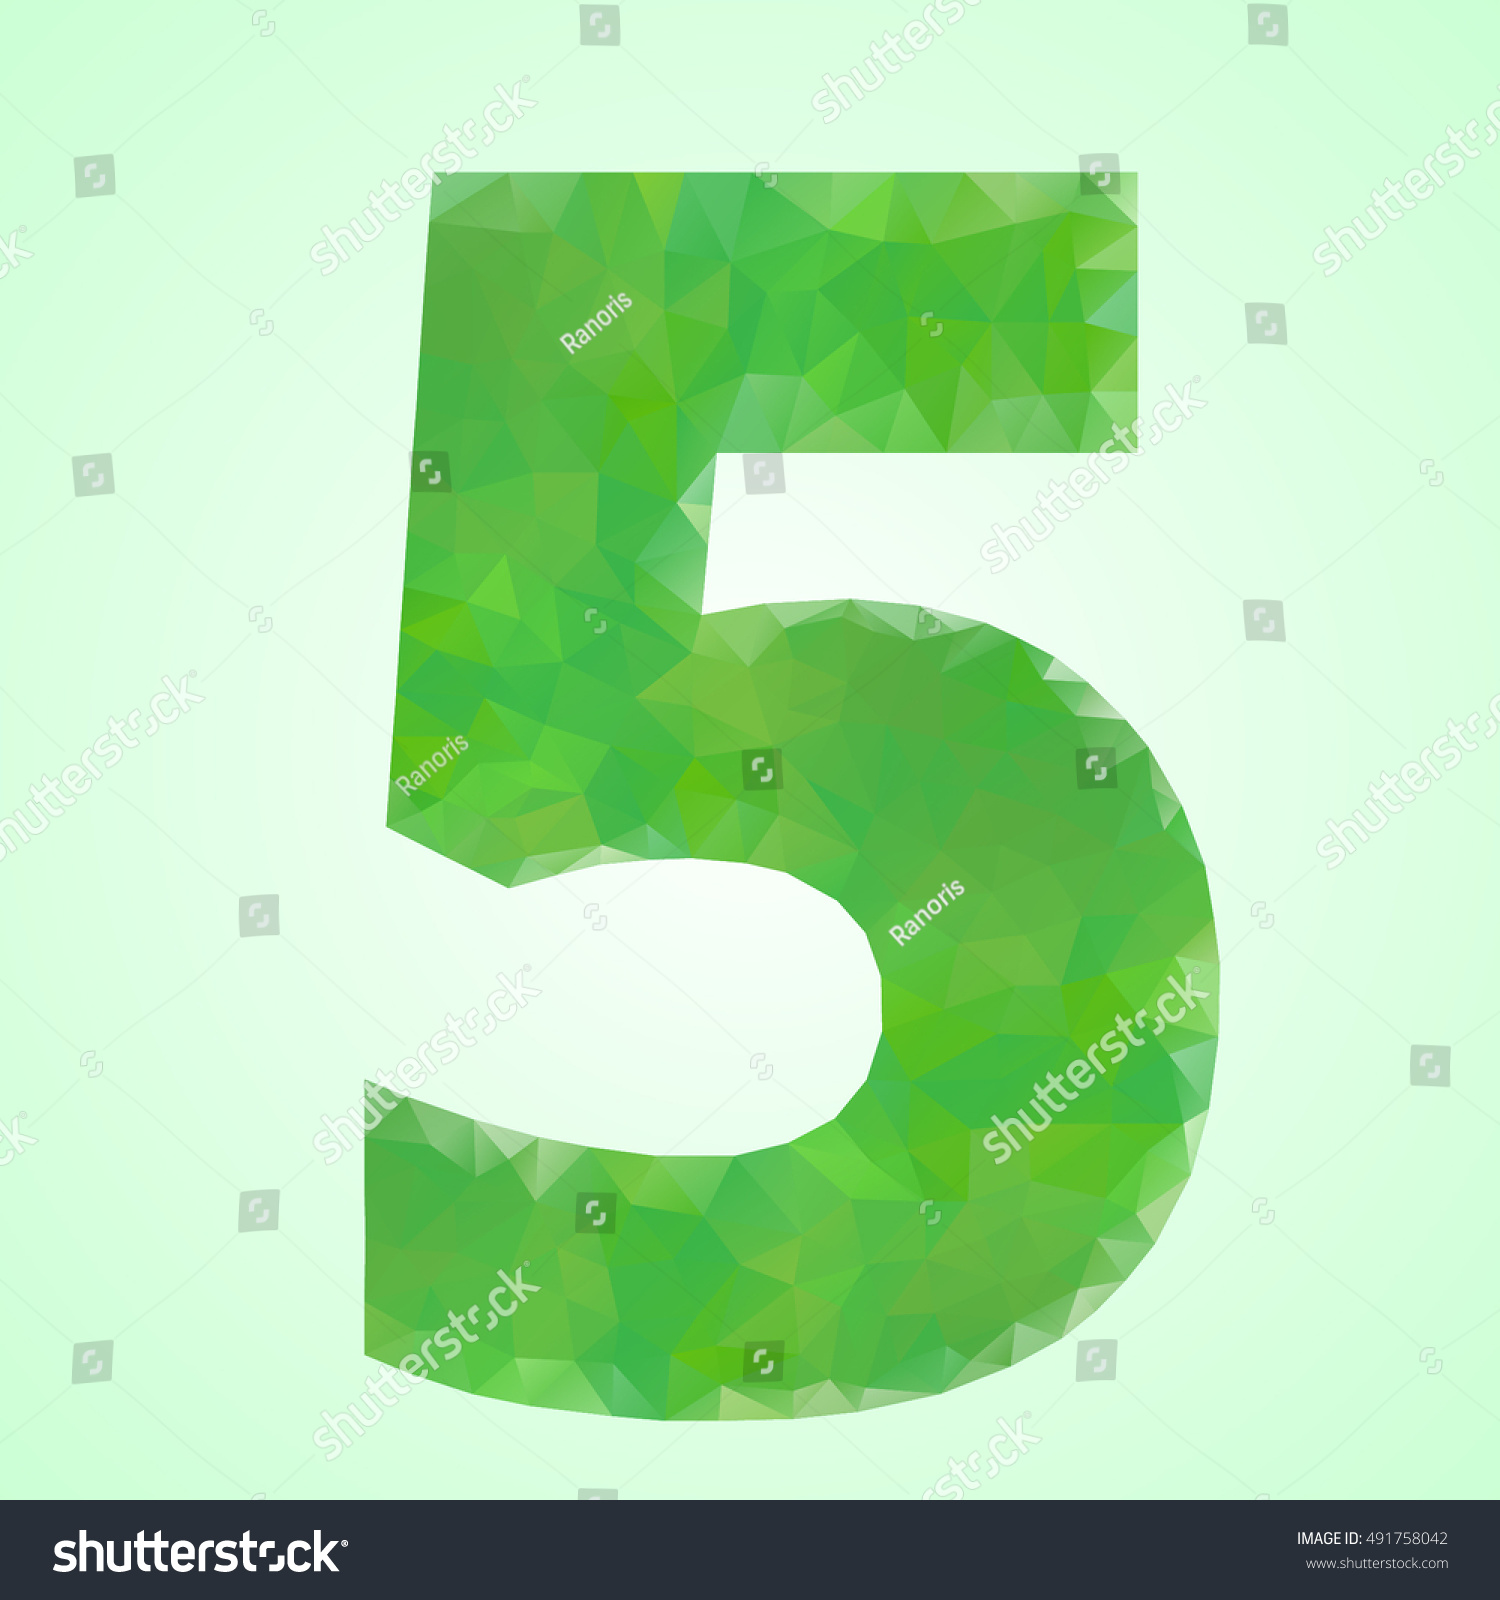 Number 5 Color Green Crystal Style Stock Vector 491758042 - Shutterstock